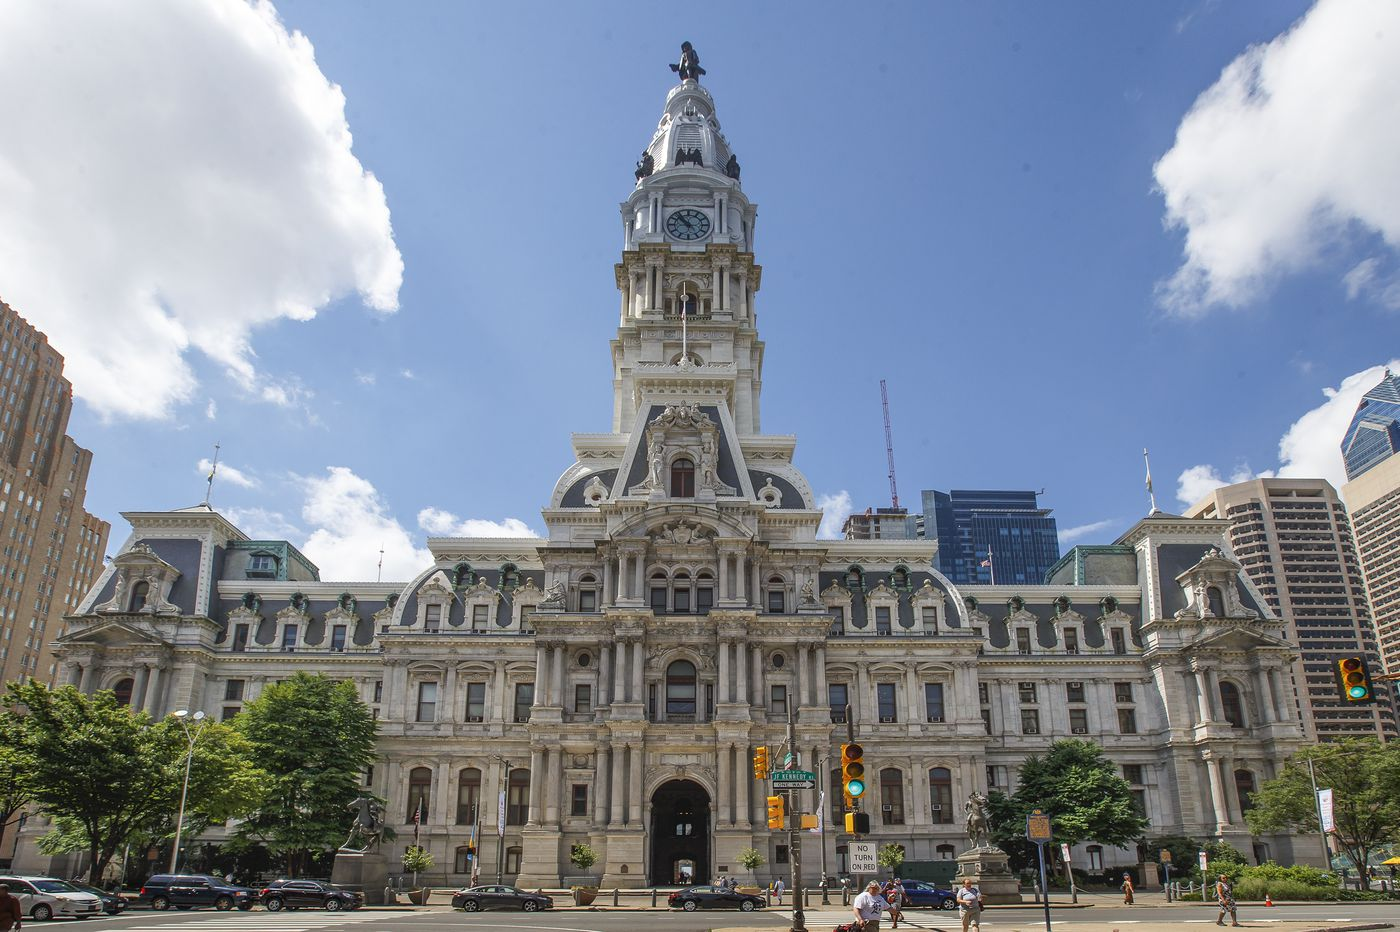 Philadelphia paid $132K to settle two sexual harassment cases in June